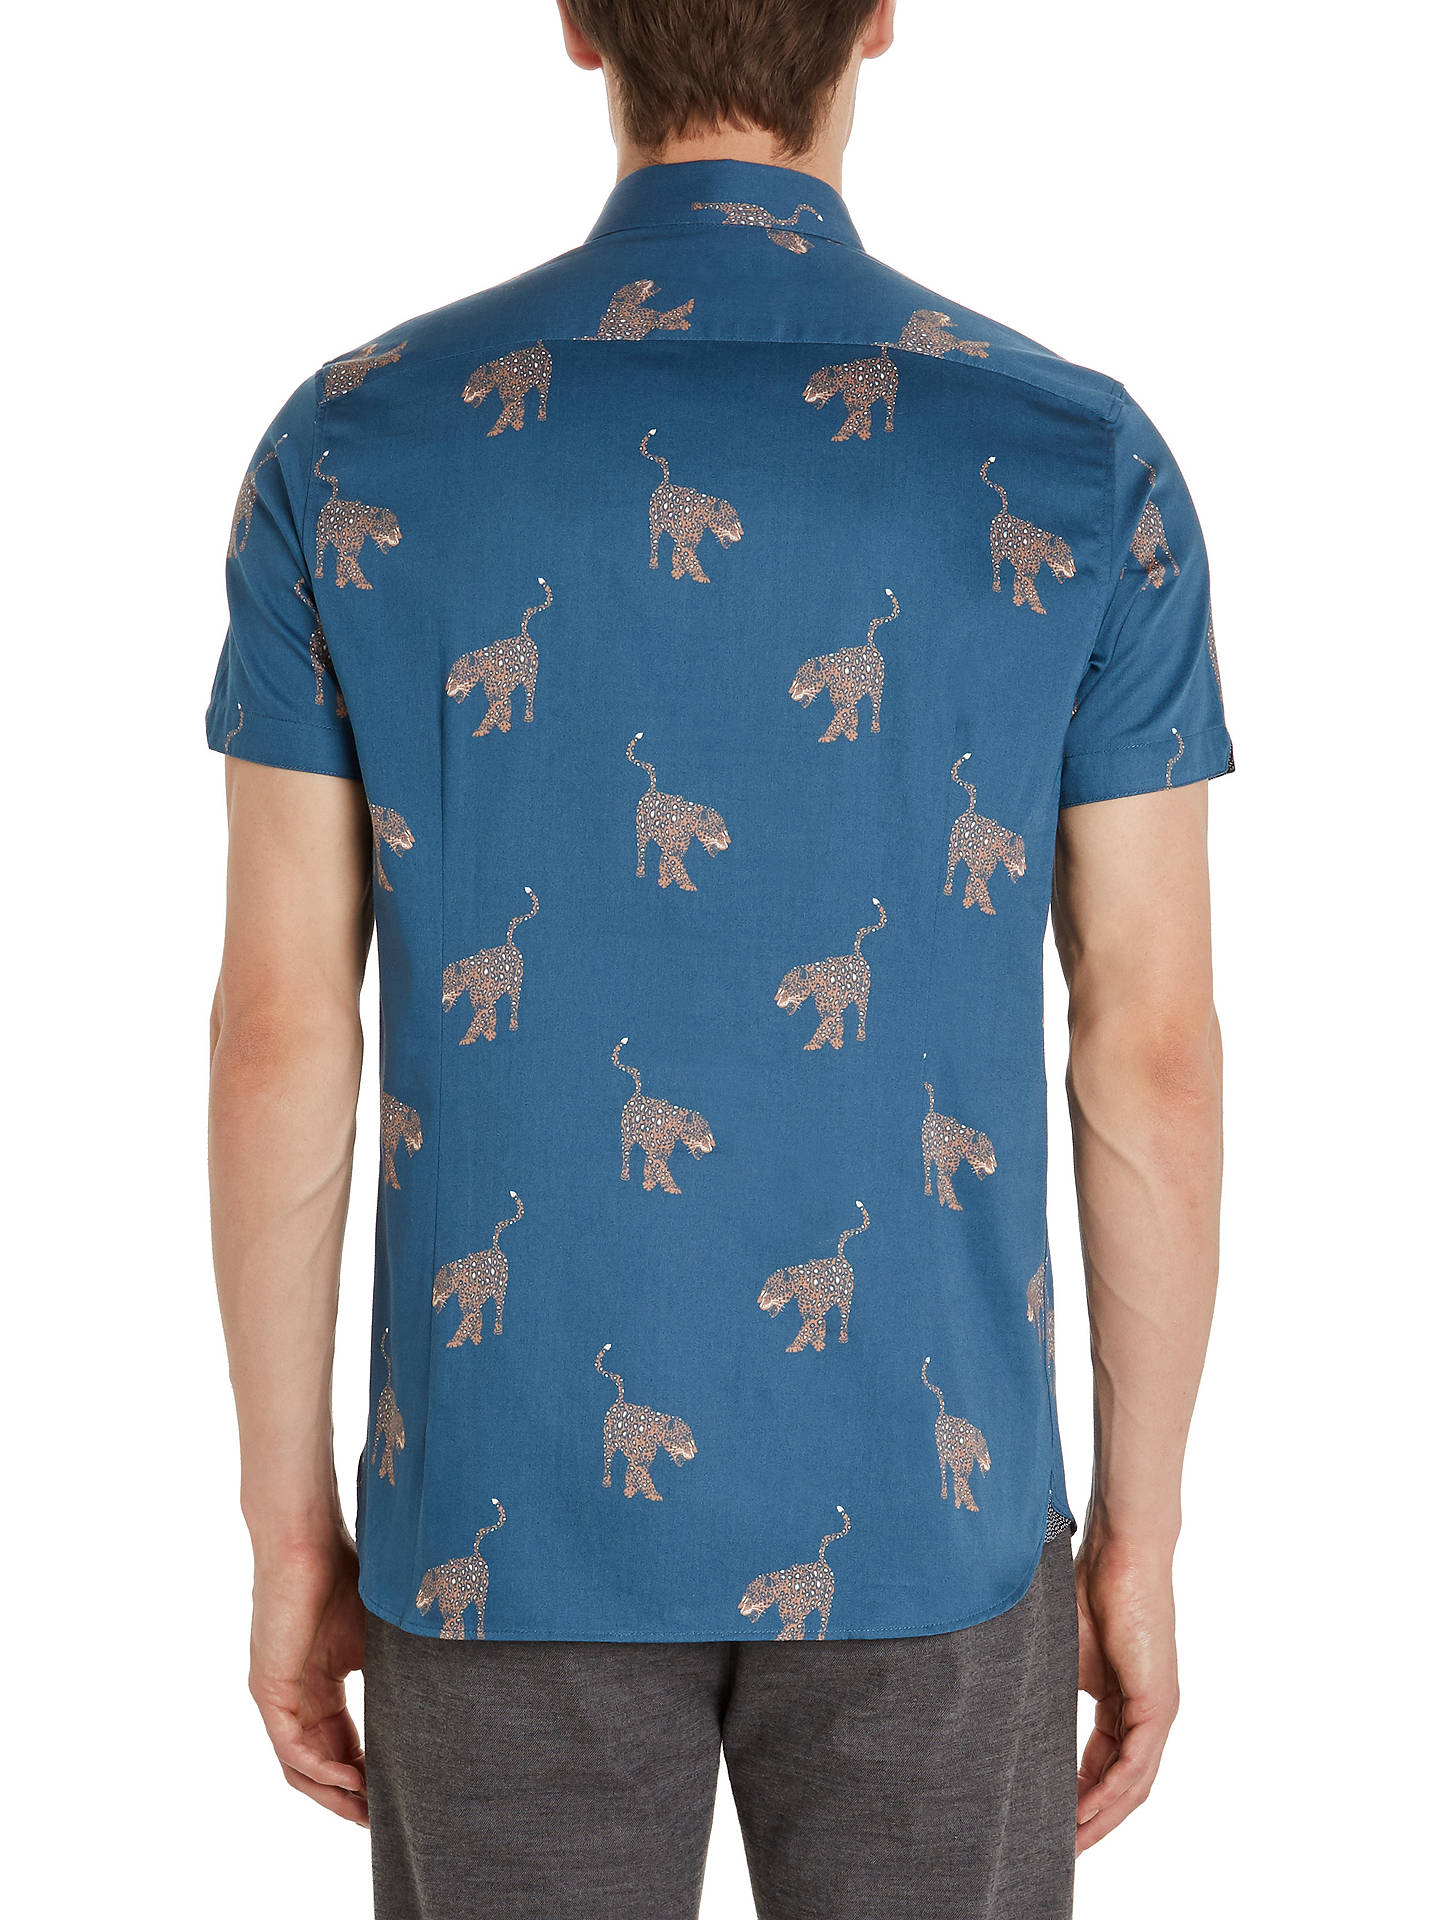 BuyTed Baker Santha Panther Print Cotton Shirt, Blue/Multi, 2 Online at johnlewis.com